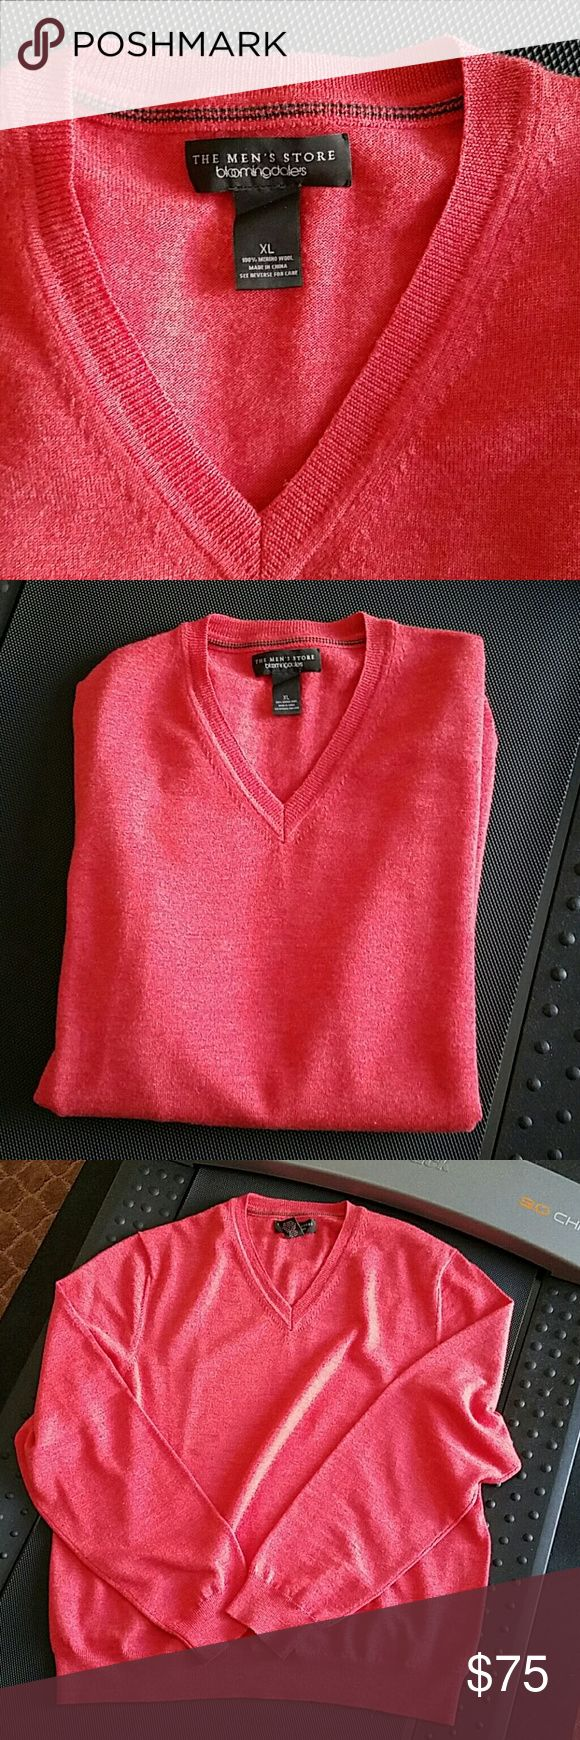 MENS CASHMERE SWEATER FROM MY HUBBY'S CLOSET  THE MENS STORE BLOOMINGDALES MENS CASHMERE SWEATER  SIZE XL  SALMON COLORED  LENGTH 26.5 INCHES  ARM LENGTH 19 5 INCHES  LIKE NEW CONDITION  100%MERINO WOOL BLOOMINGDALES MENS STORE  Sweaters V-Neck